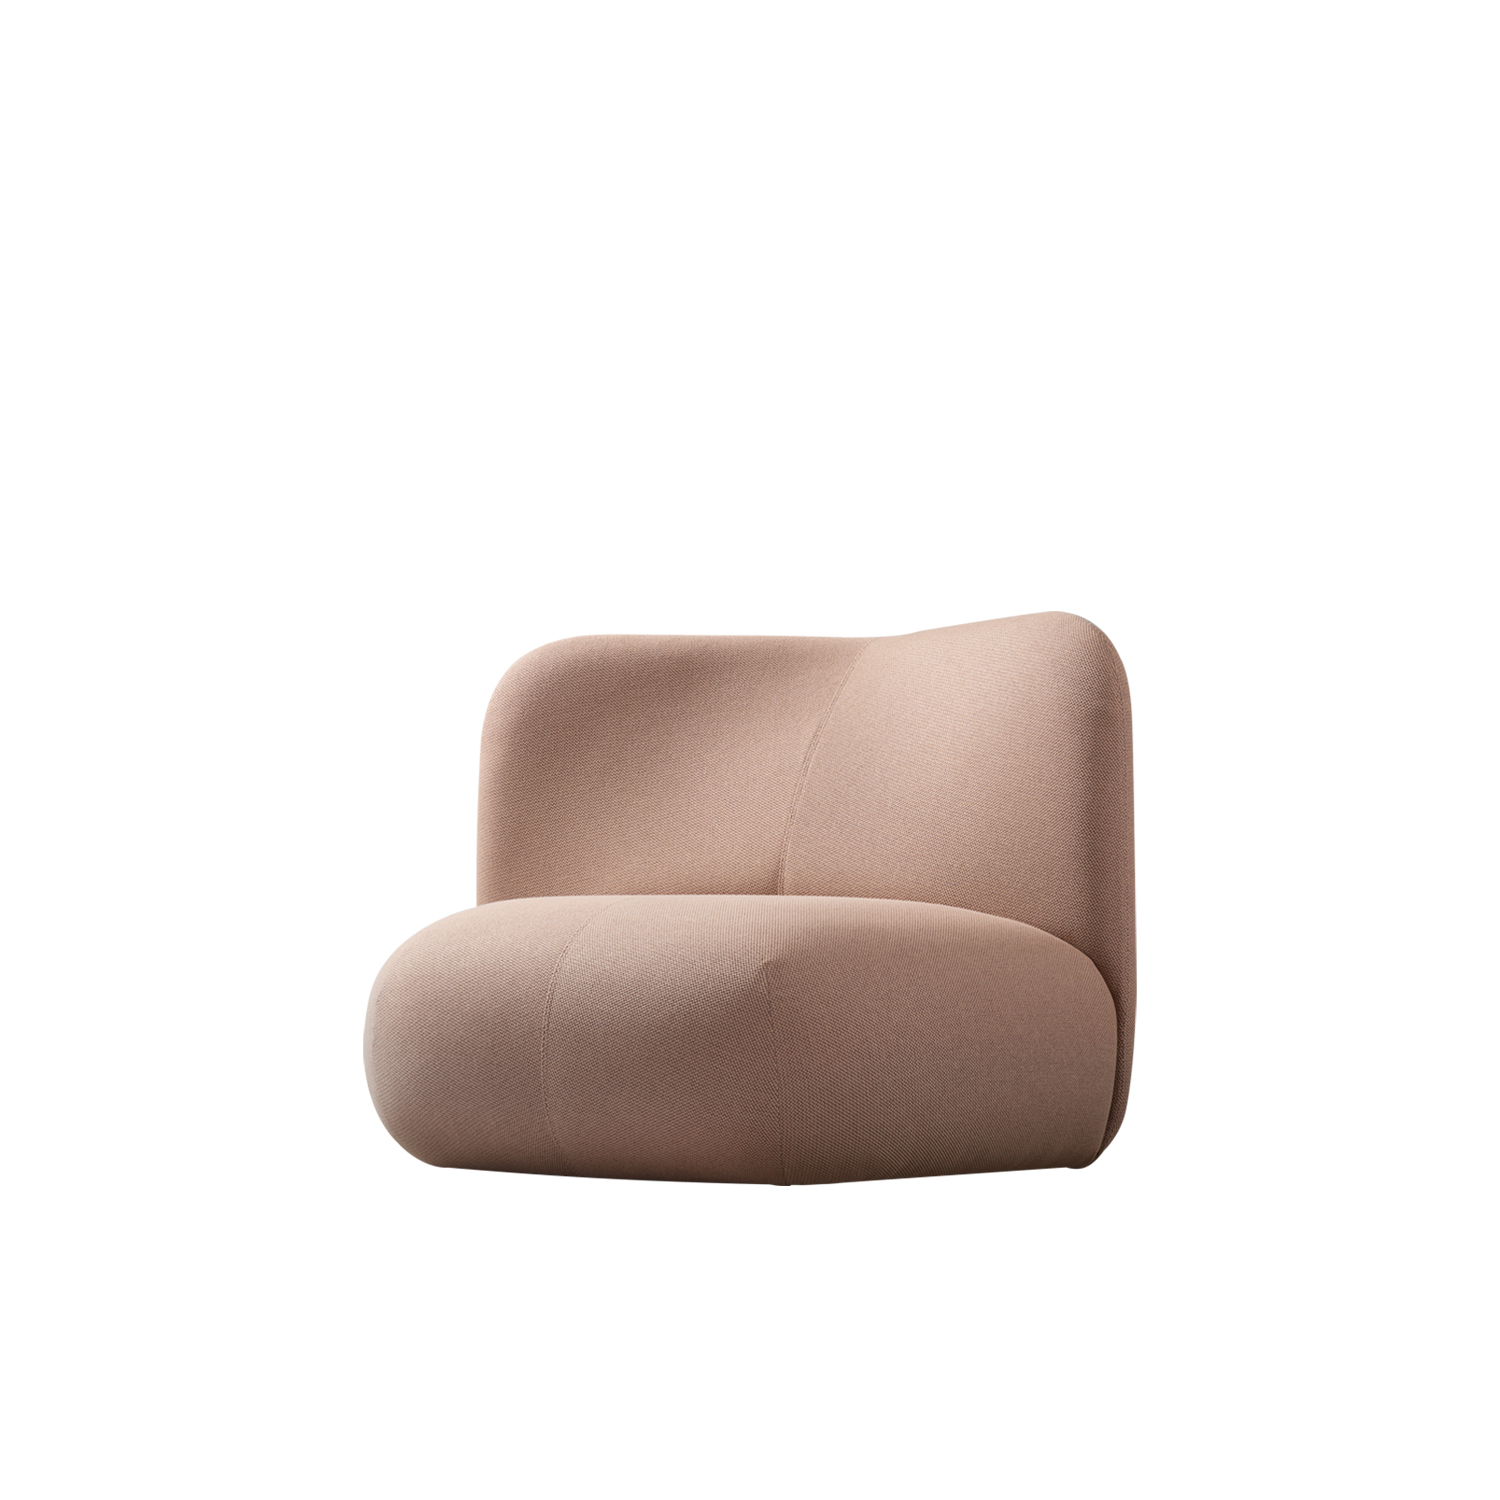 Botera Lounge Chair - Padded with four different types of foam, Botera's design focuses on comfort. A chunky cushion forms the base from which the high or low backrest is developed, making this armchair ideal for use in modular arrangements. And it is precisely through its compositions that Botera brings people together and encourages them to socialise, breaking down the final boundaries between home and contract settings to create a soft, personal, hybrid space. Botera loves being in company, especially in public spaces, but at home it also enjoys being on its own.